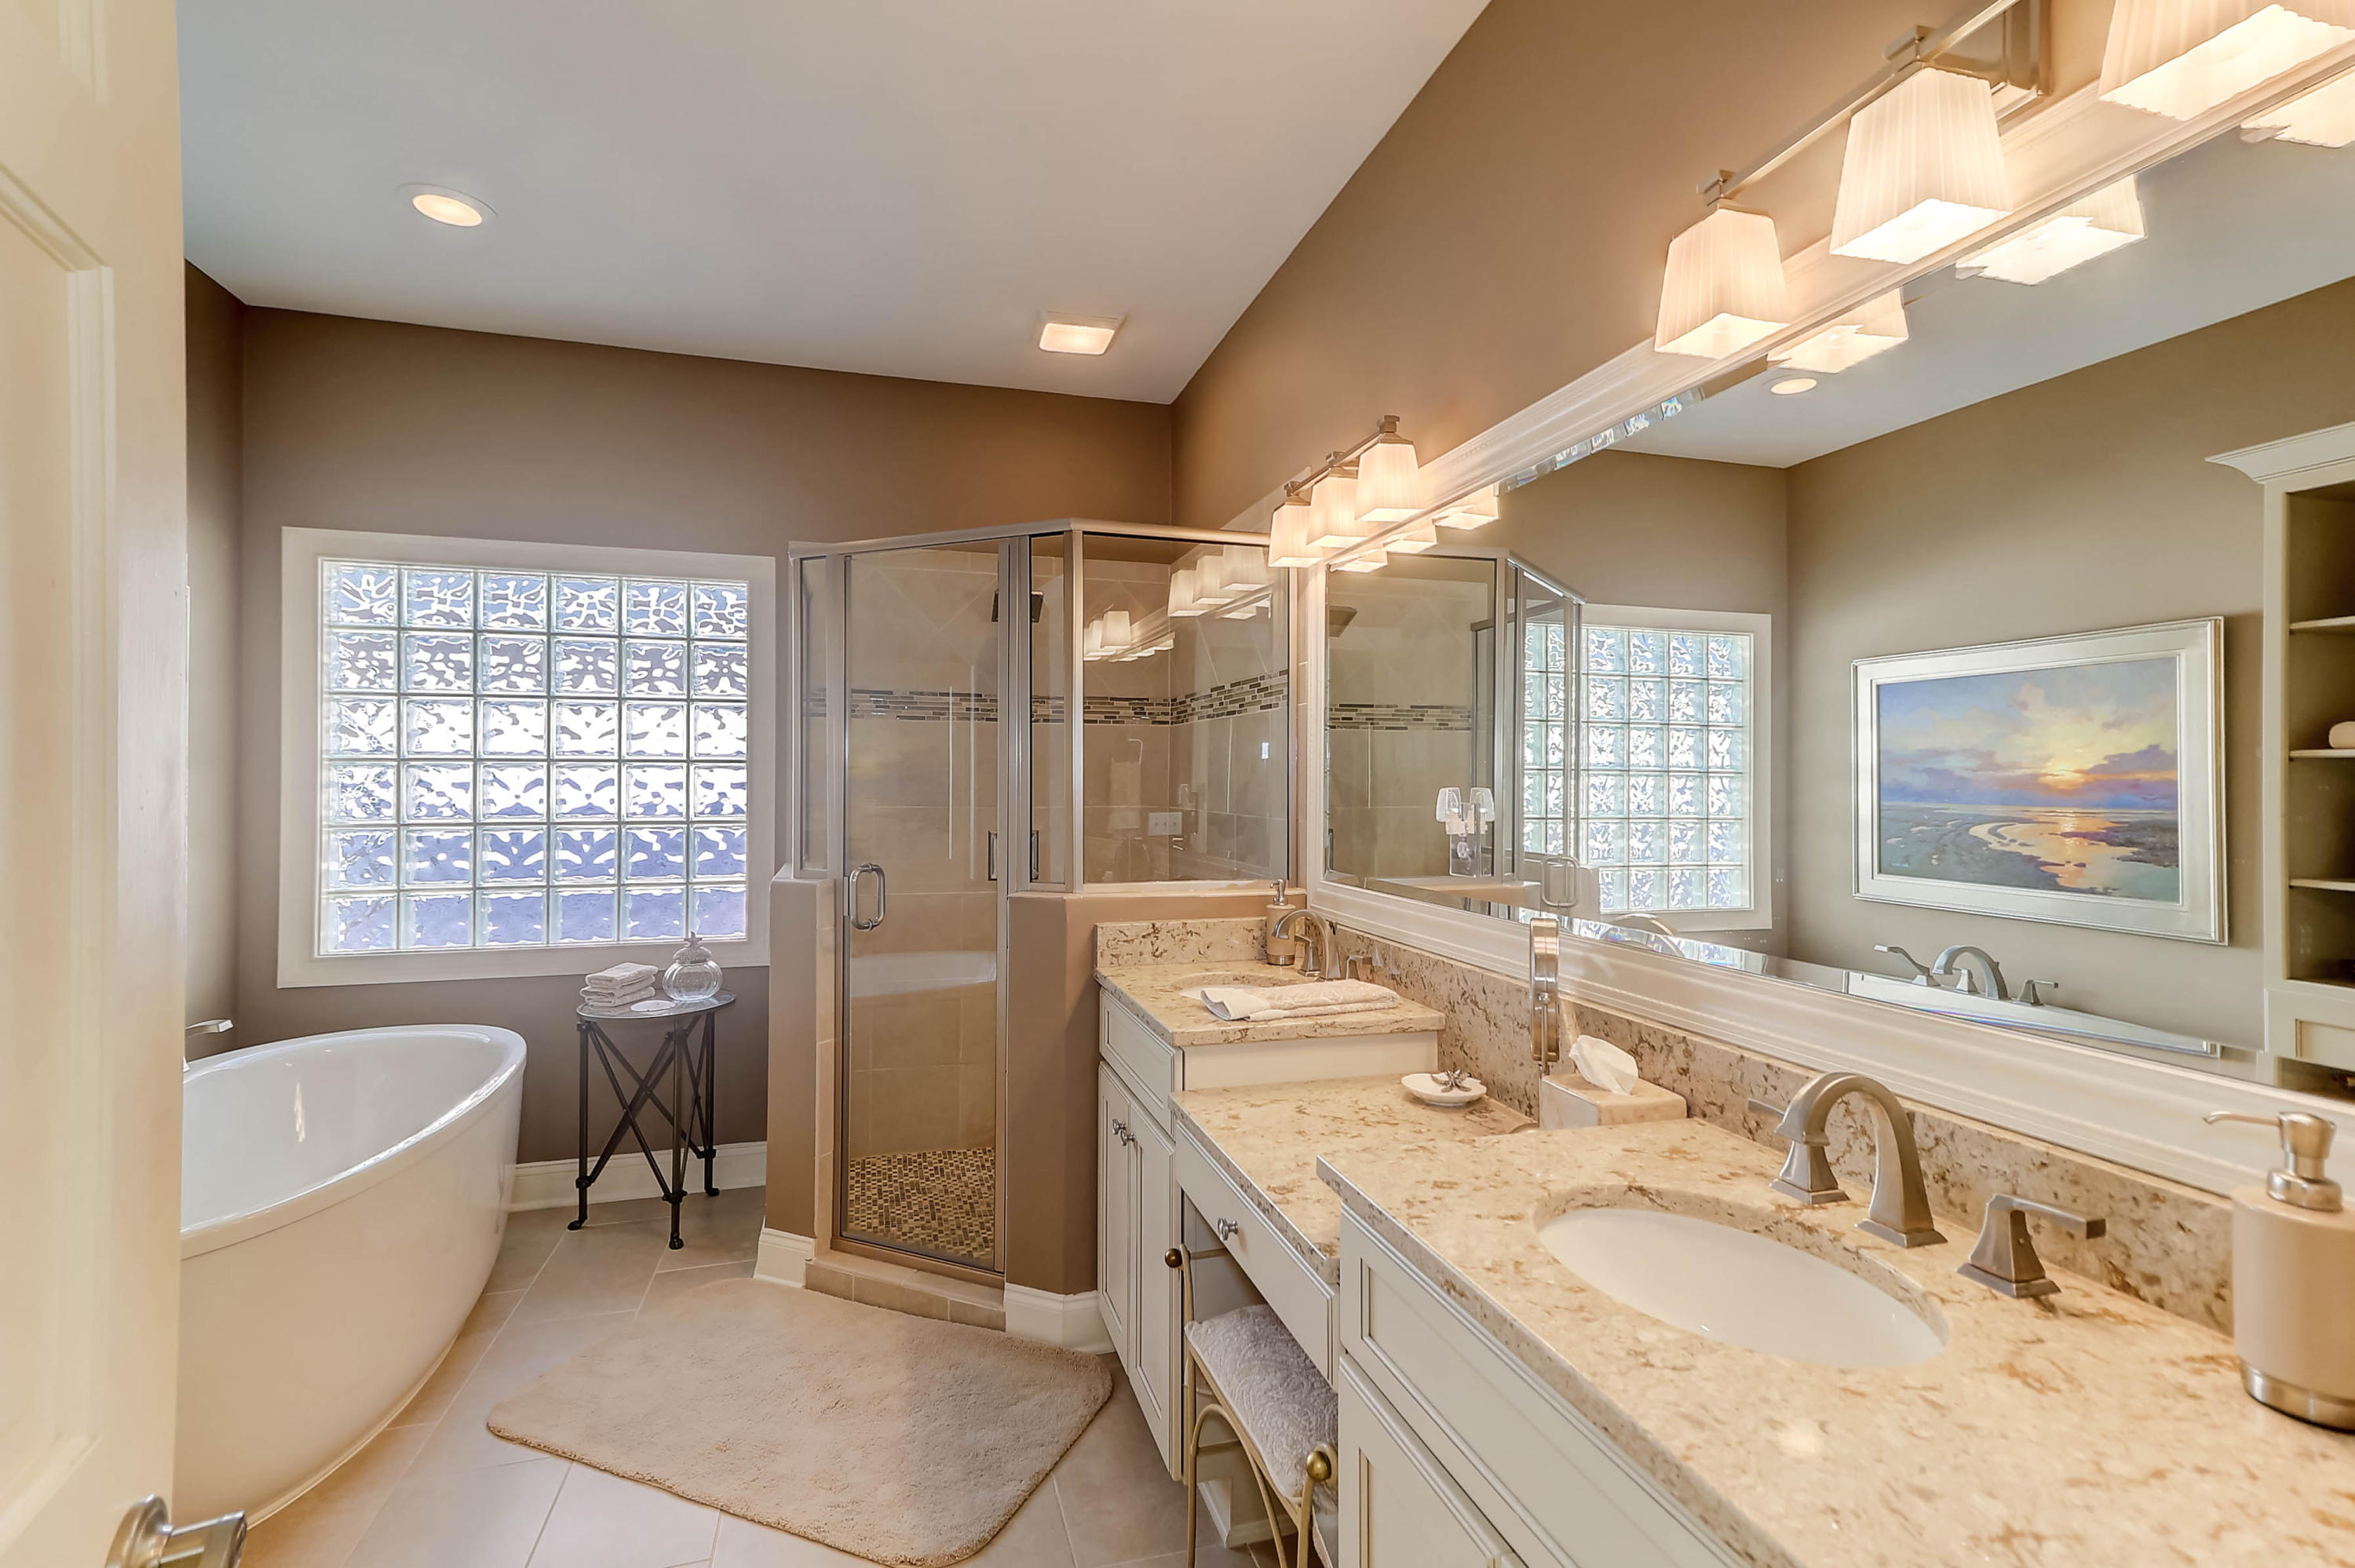 Wild Dunes Homes For Sale - 36 Ocean Point, Isle of Palms, SC - 27